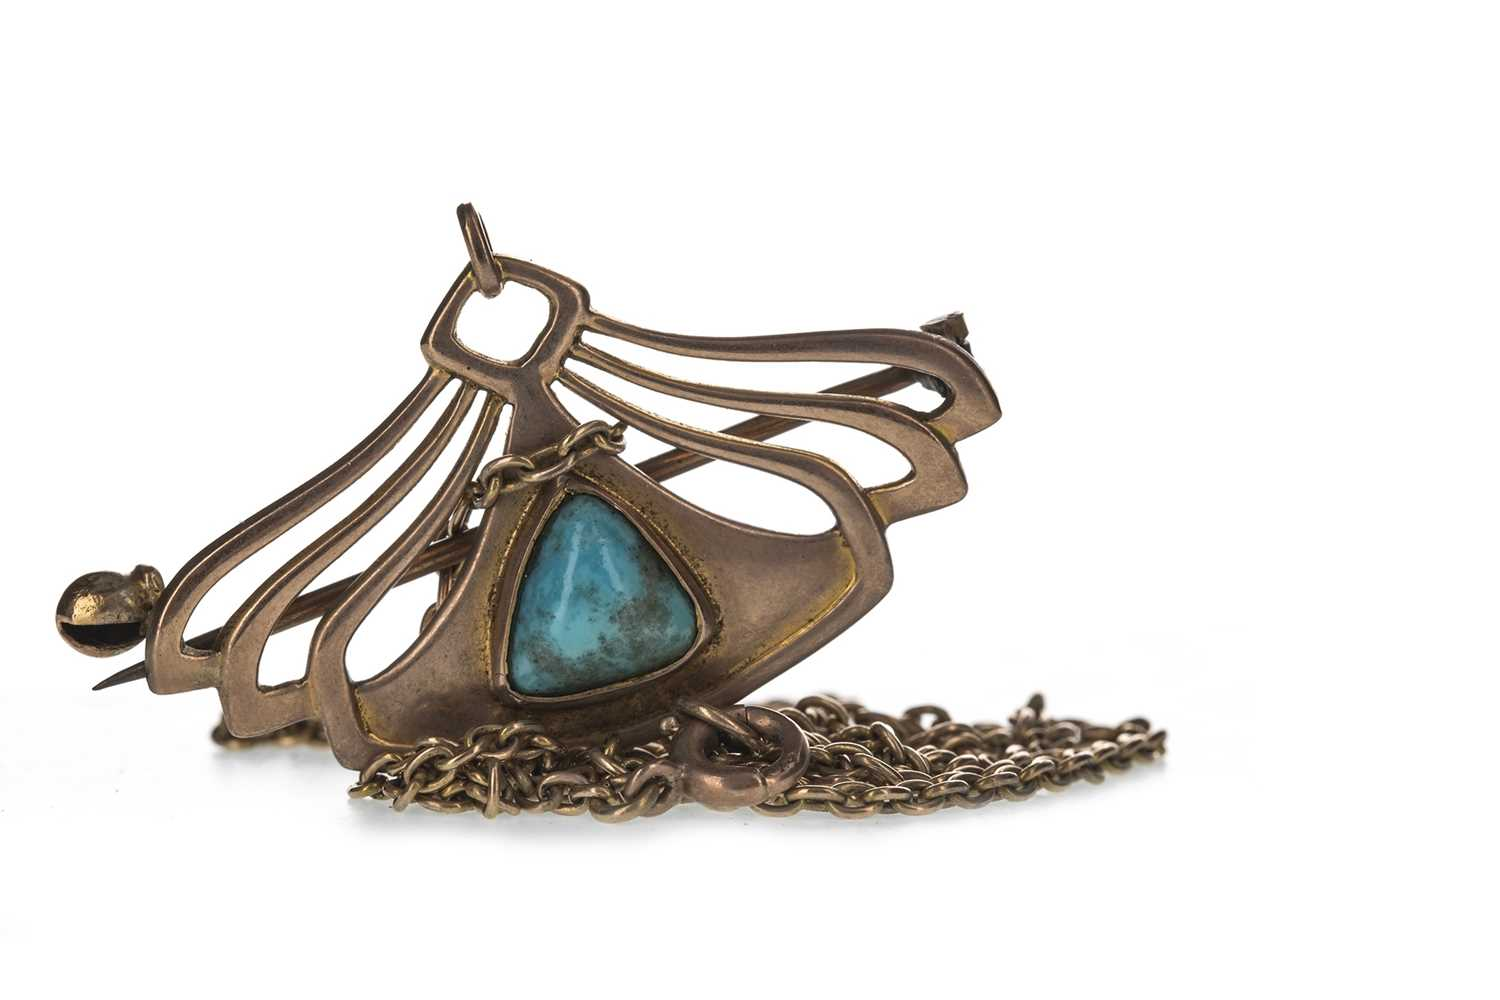 Lot 320-AN ART NOUVEAU TURQUOISE BROOCH BY BARNET HENRY JOSEPH